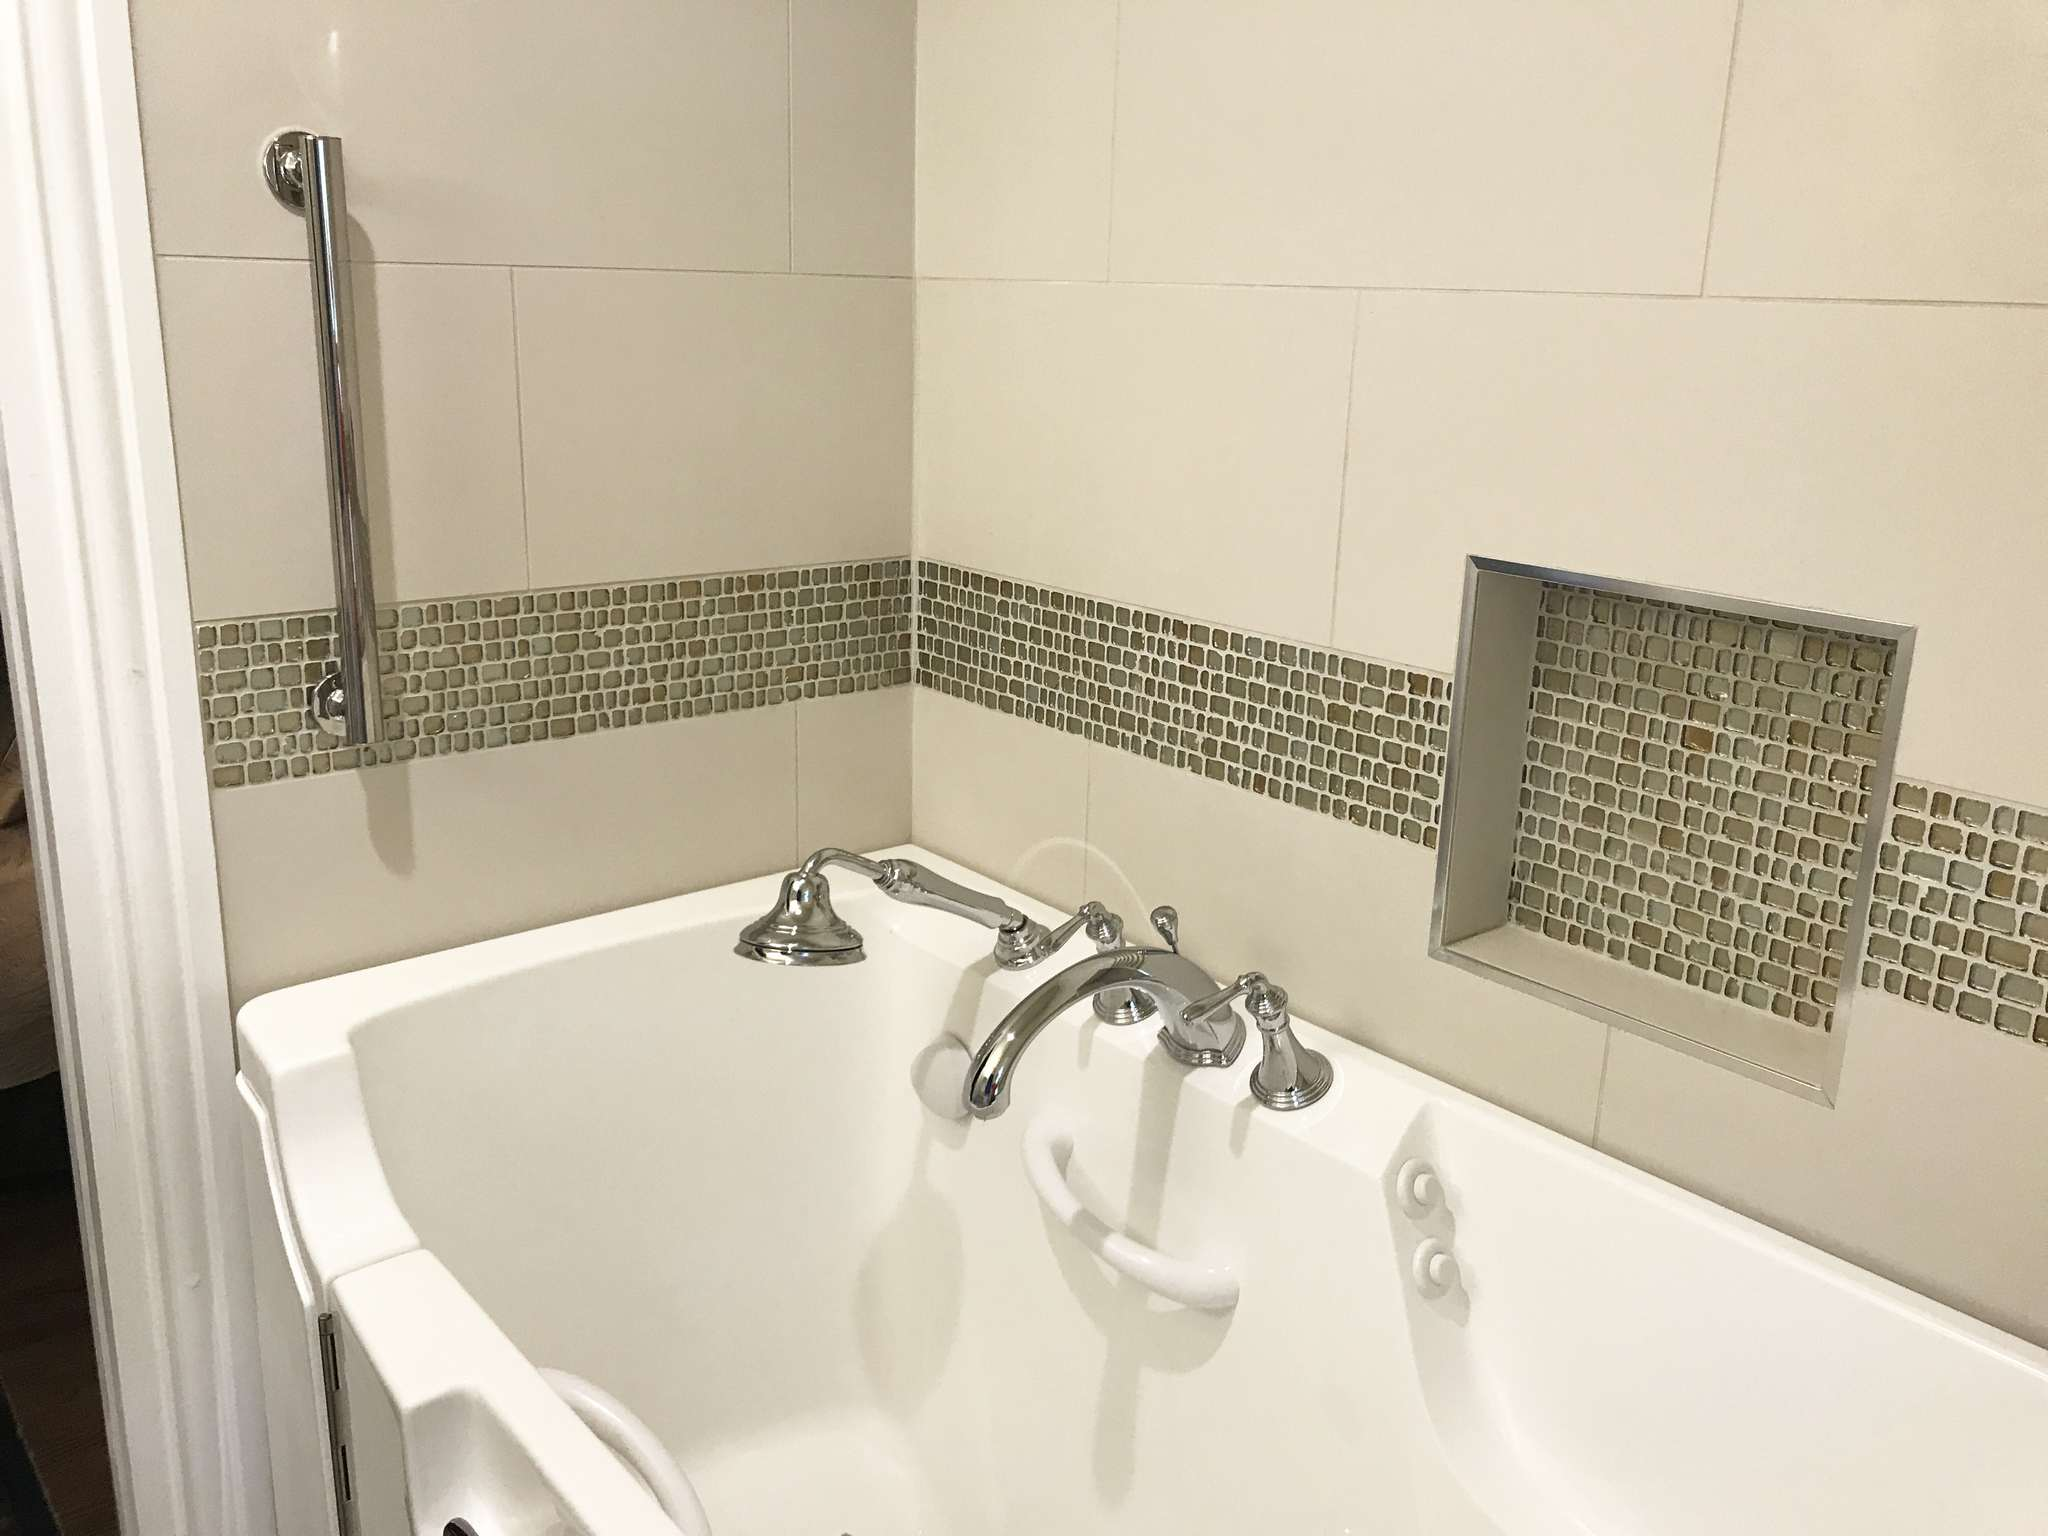 Dallas Bathroom Remodel Model bathroom-remodel-with-walk-in-tub-dallas-75219_07 - renowned